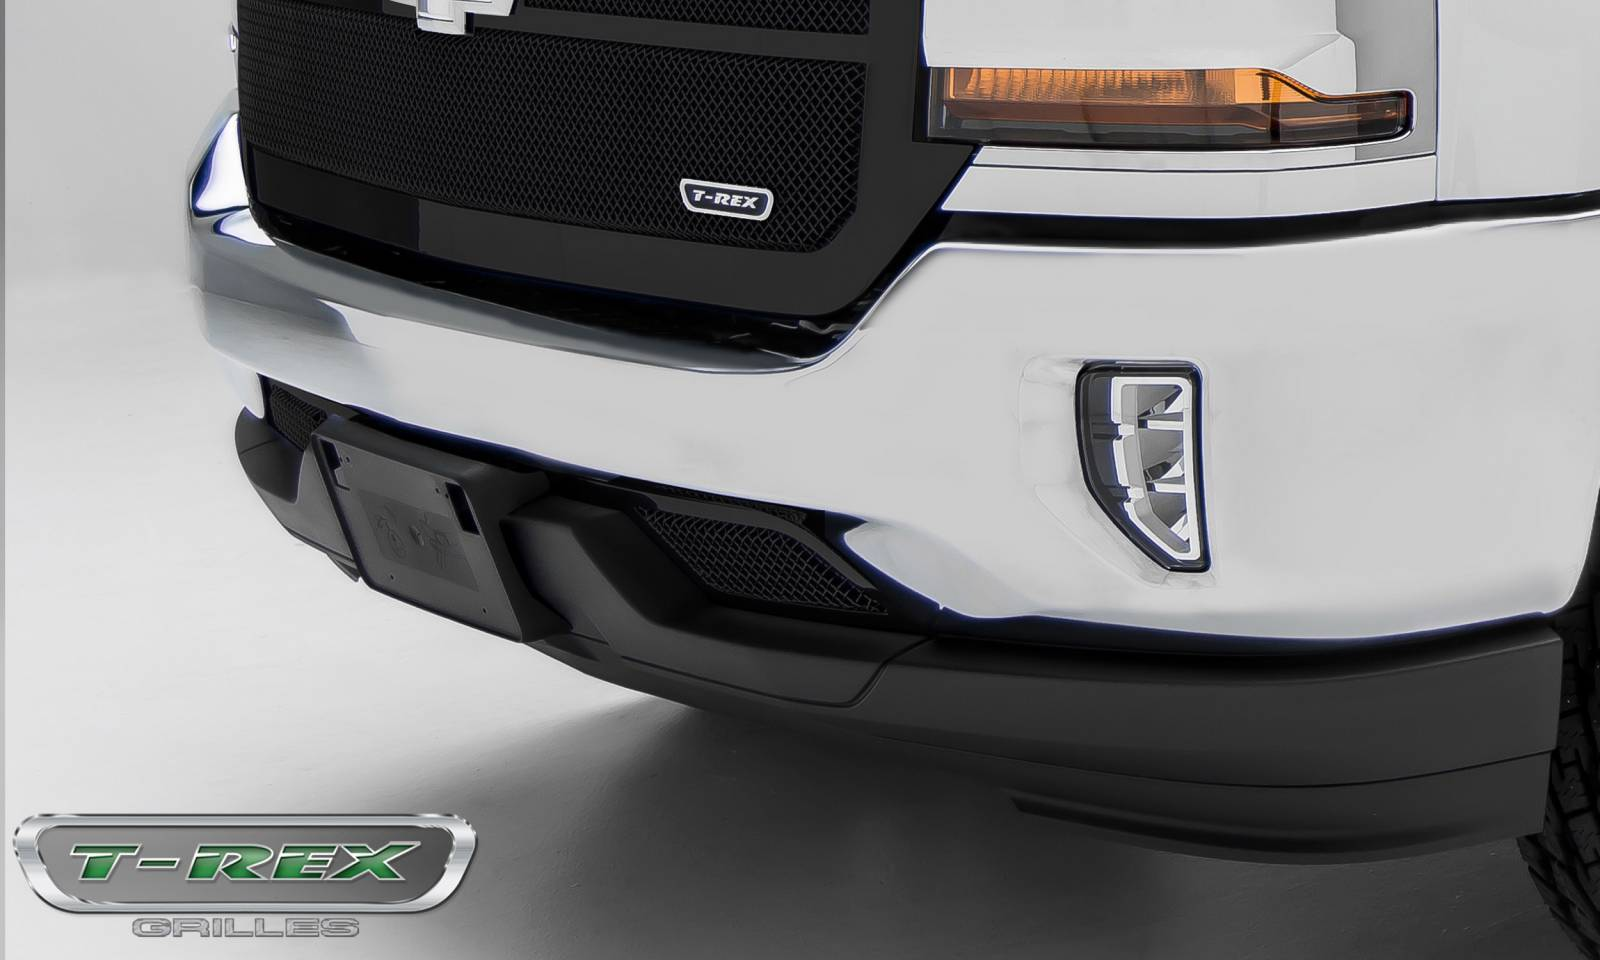 T-REX Chevrolet Silverado 1500 Upper Class Mesh Grille, Powder Coated Black, Bumper Grille Overlay - Pt # 52127